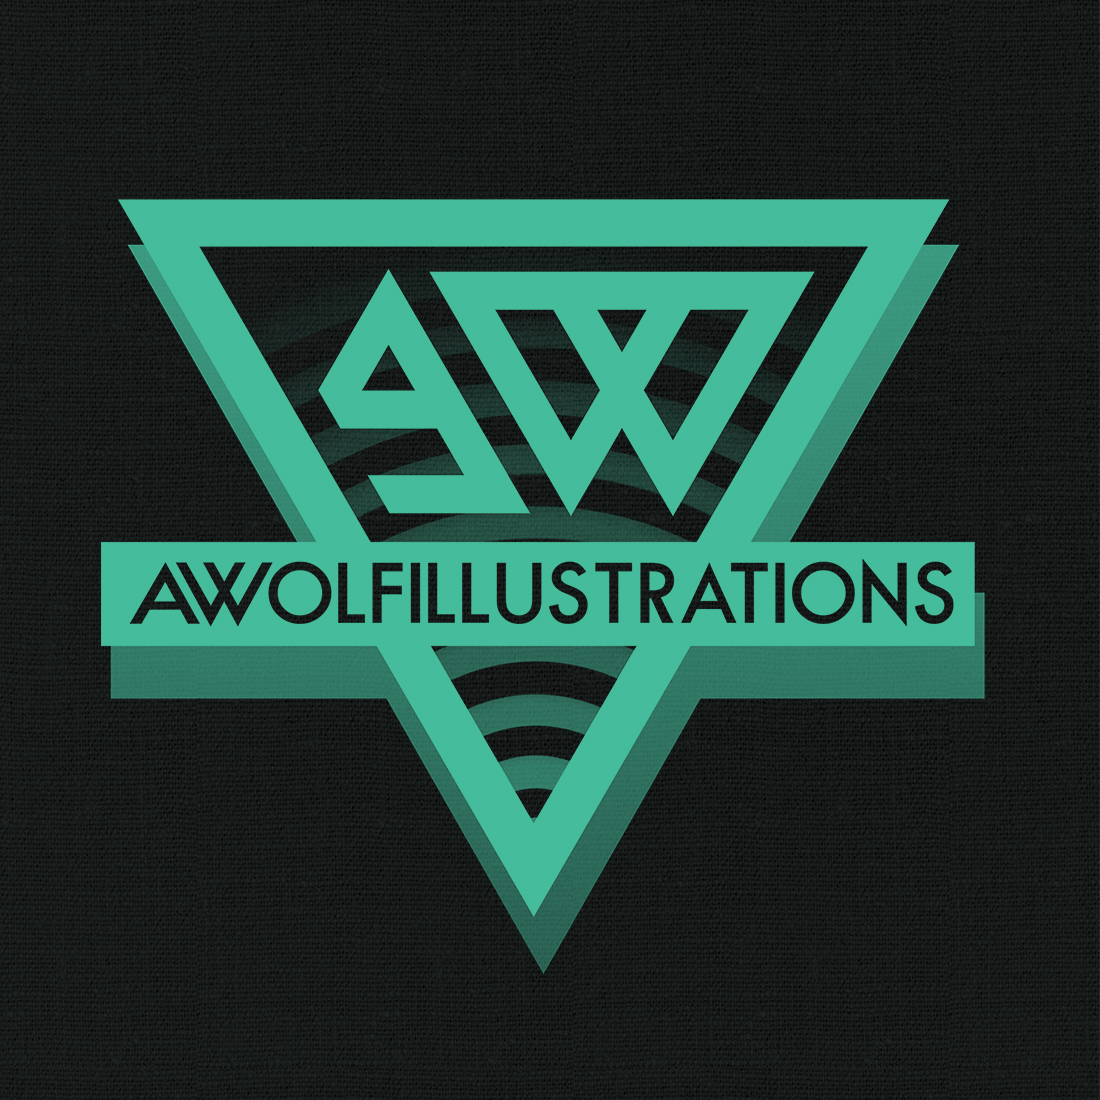 A logo design for Aaron Wolf Awolfillustrations